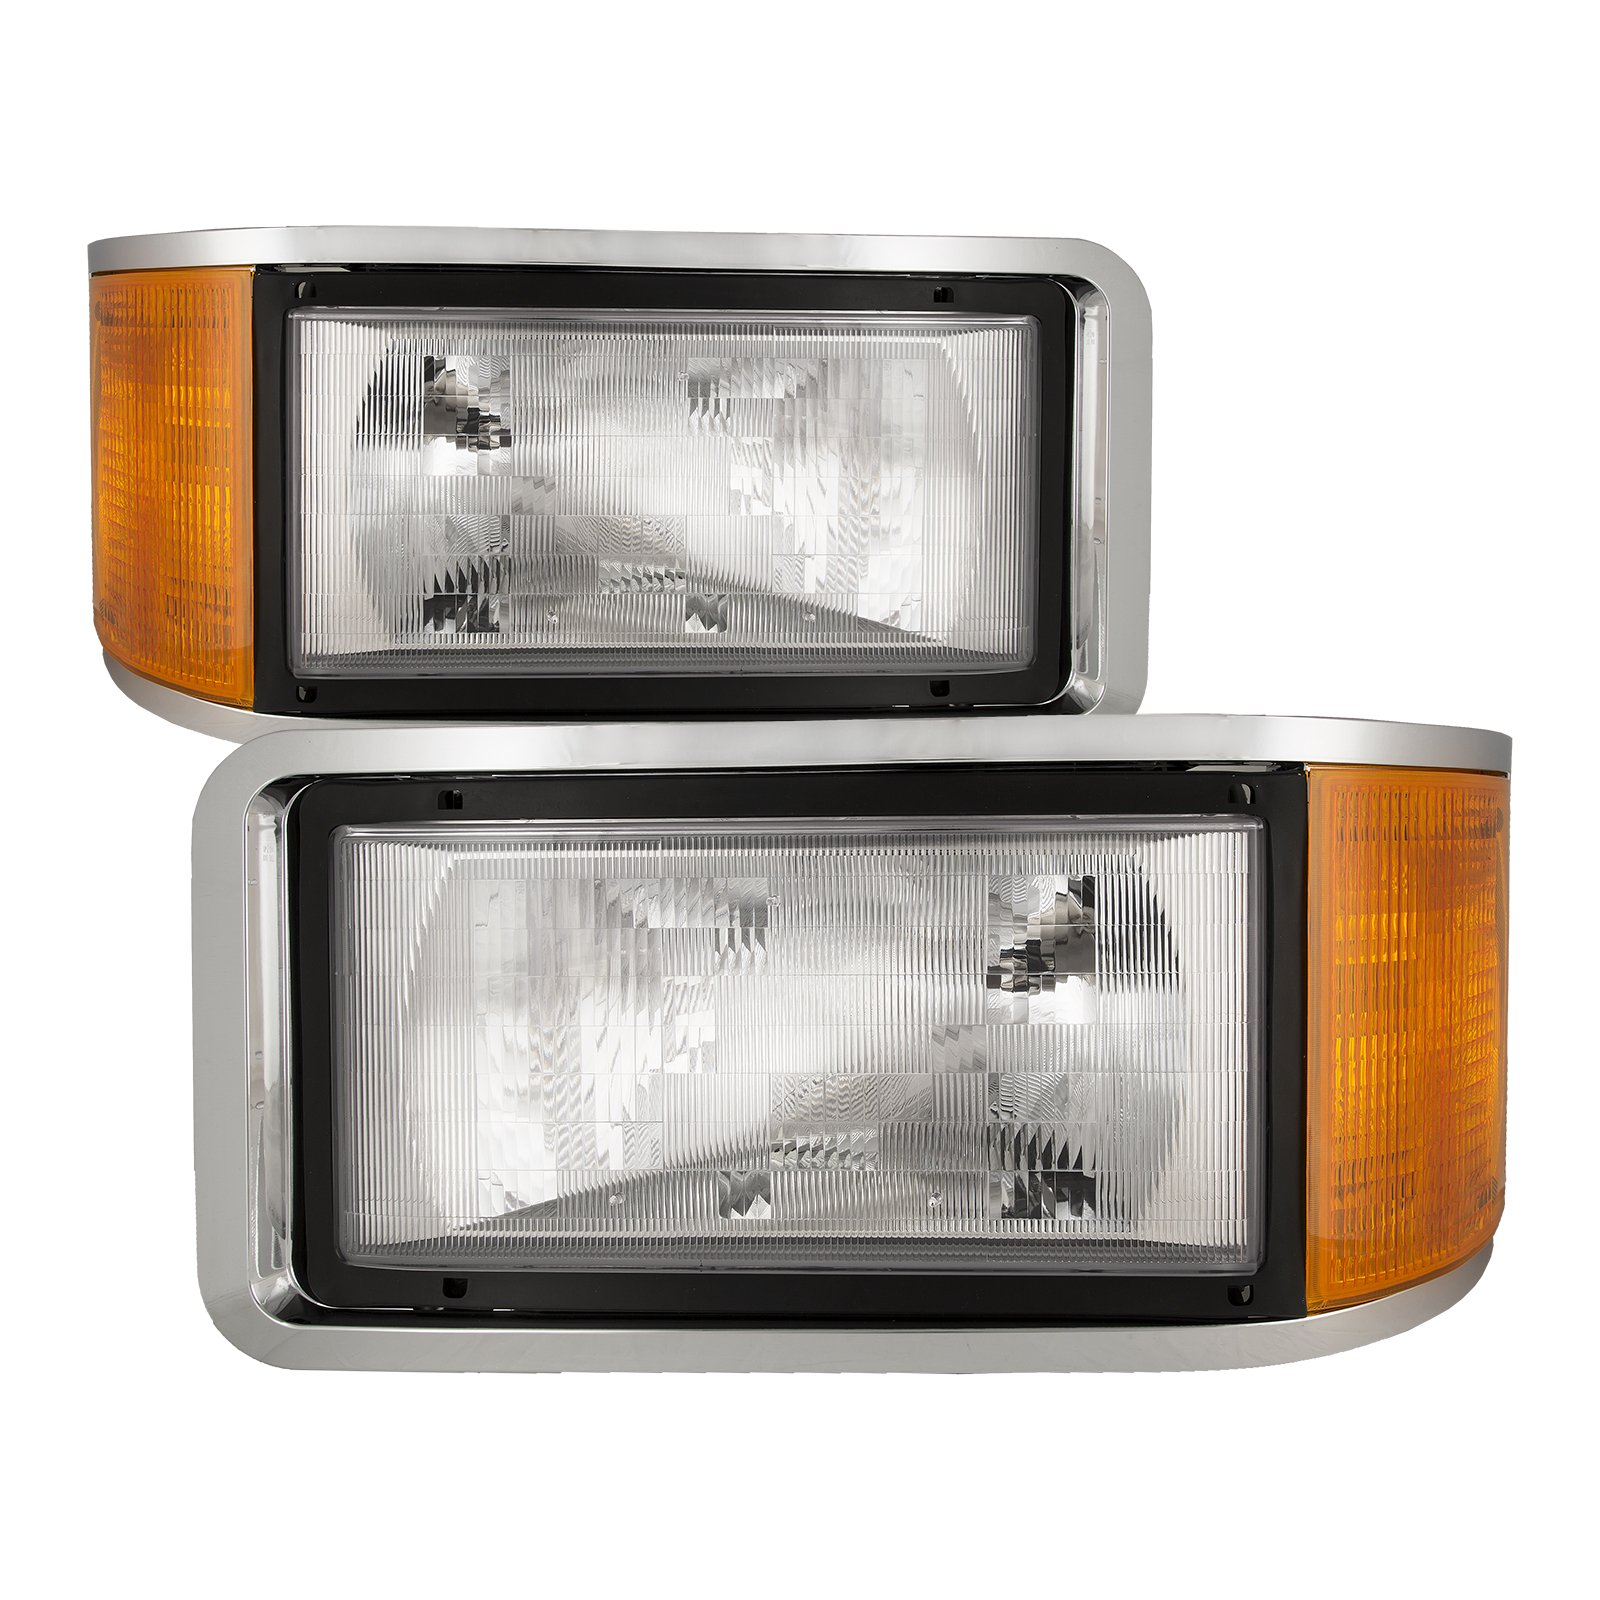 HEADLIGHTSDEPOT Chrome Housing Halogen Headlights Compatible with Mack CH Ch 600 Cl 602 603 700 712 733 Cl612 Cl613 Cl713 Includes Left Driver and Right Passenger Side Headlamps by HEADLIGHTSDEPOT